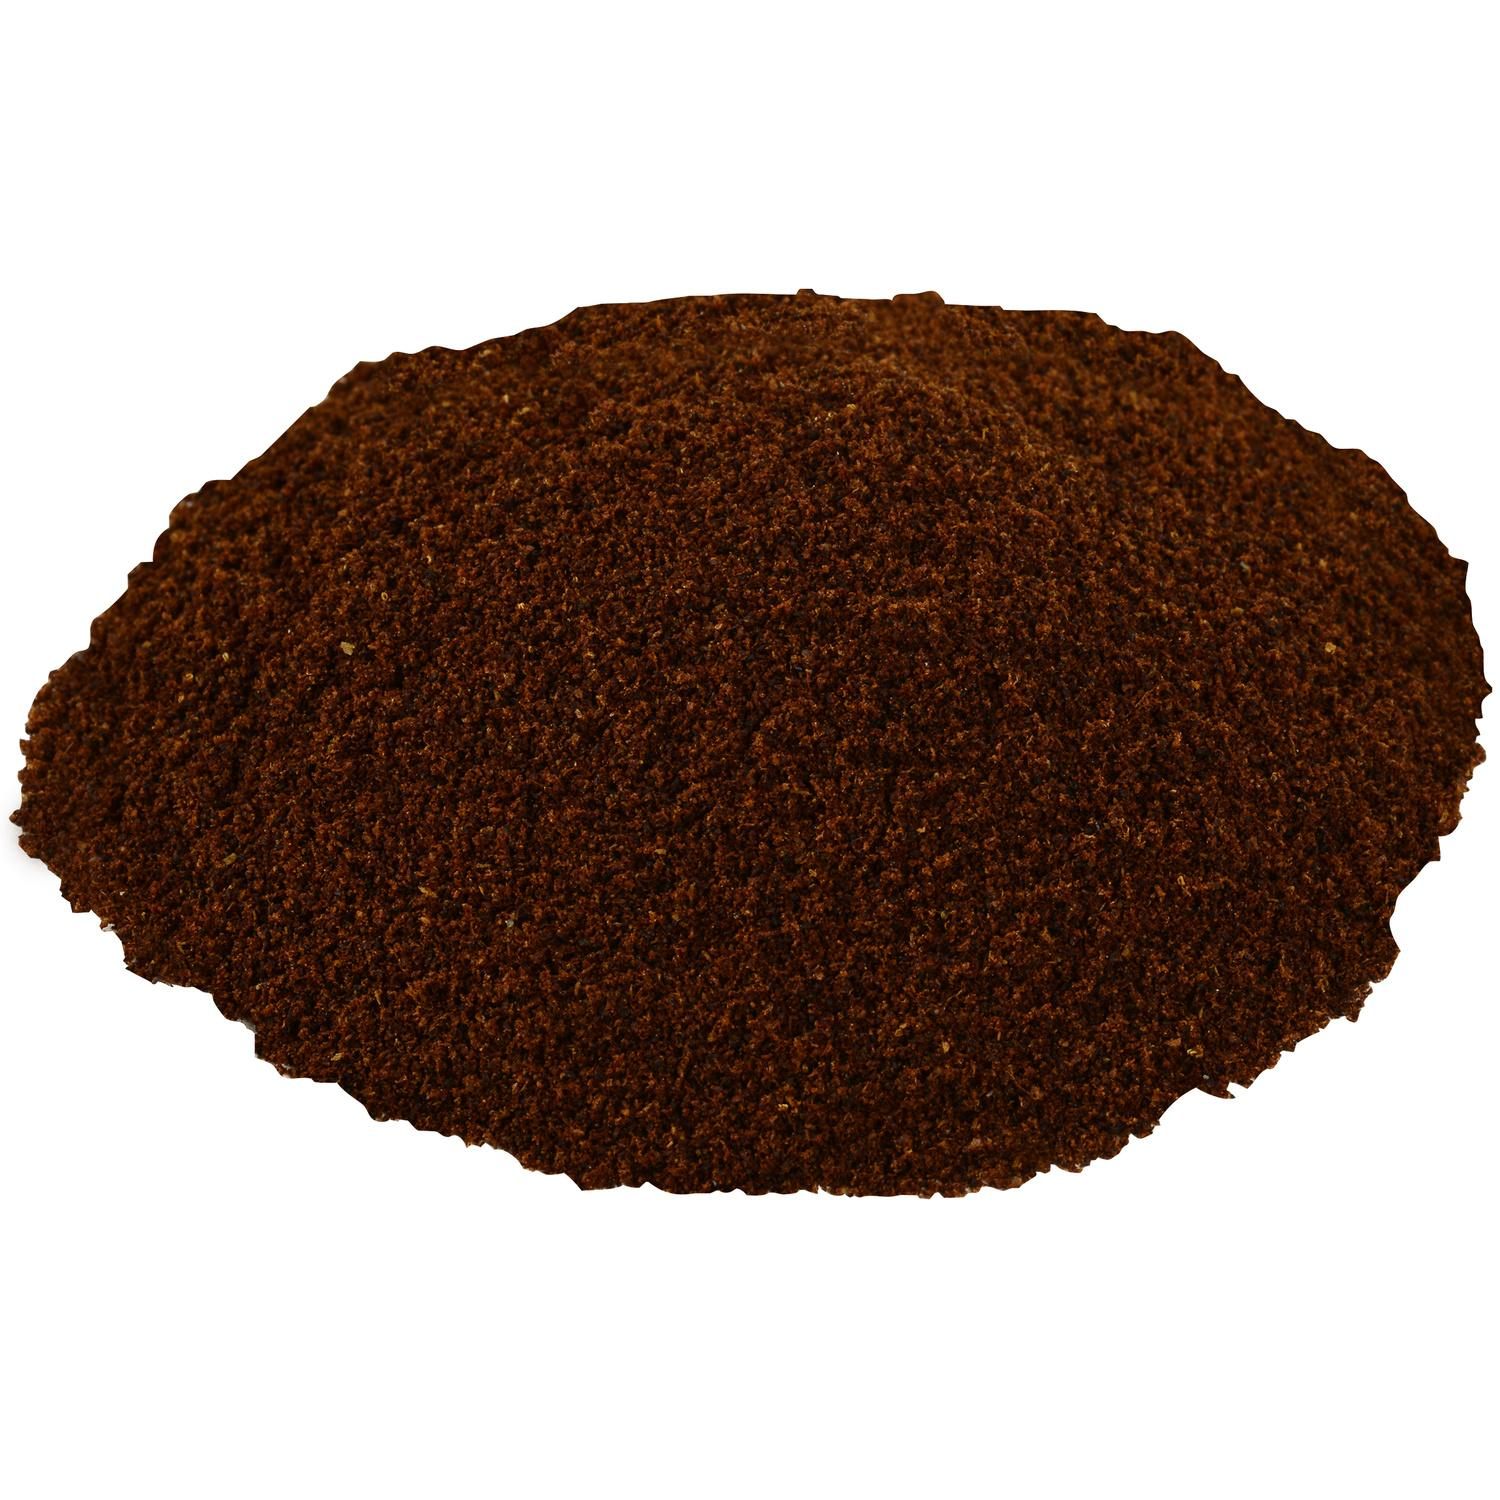 image of Cloves